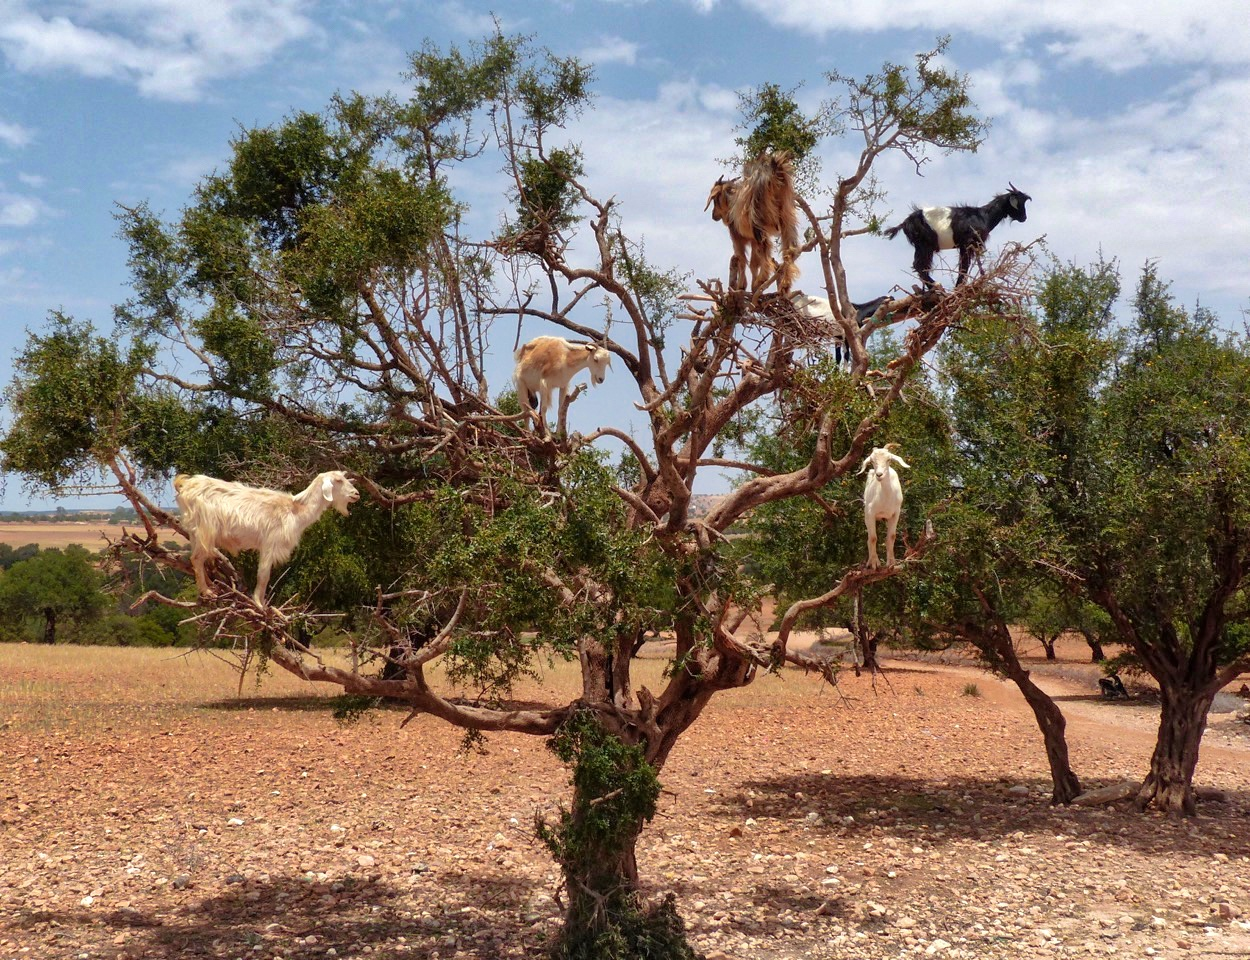 Goats on Trees from Marrakesh to Essaouira, Morocco is indeed an odd roadside attraction